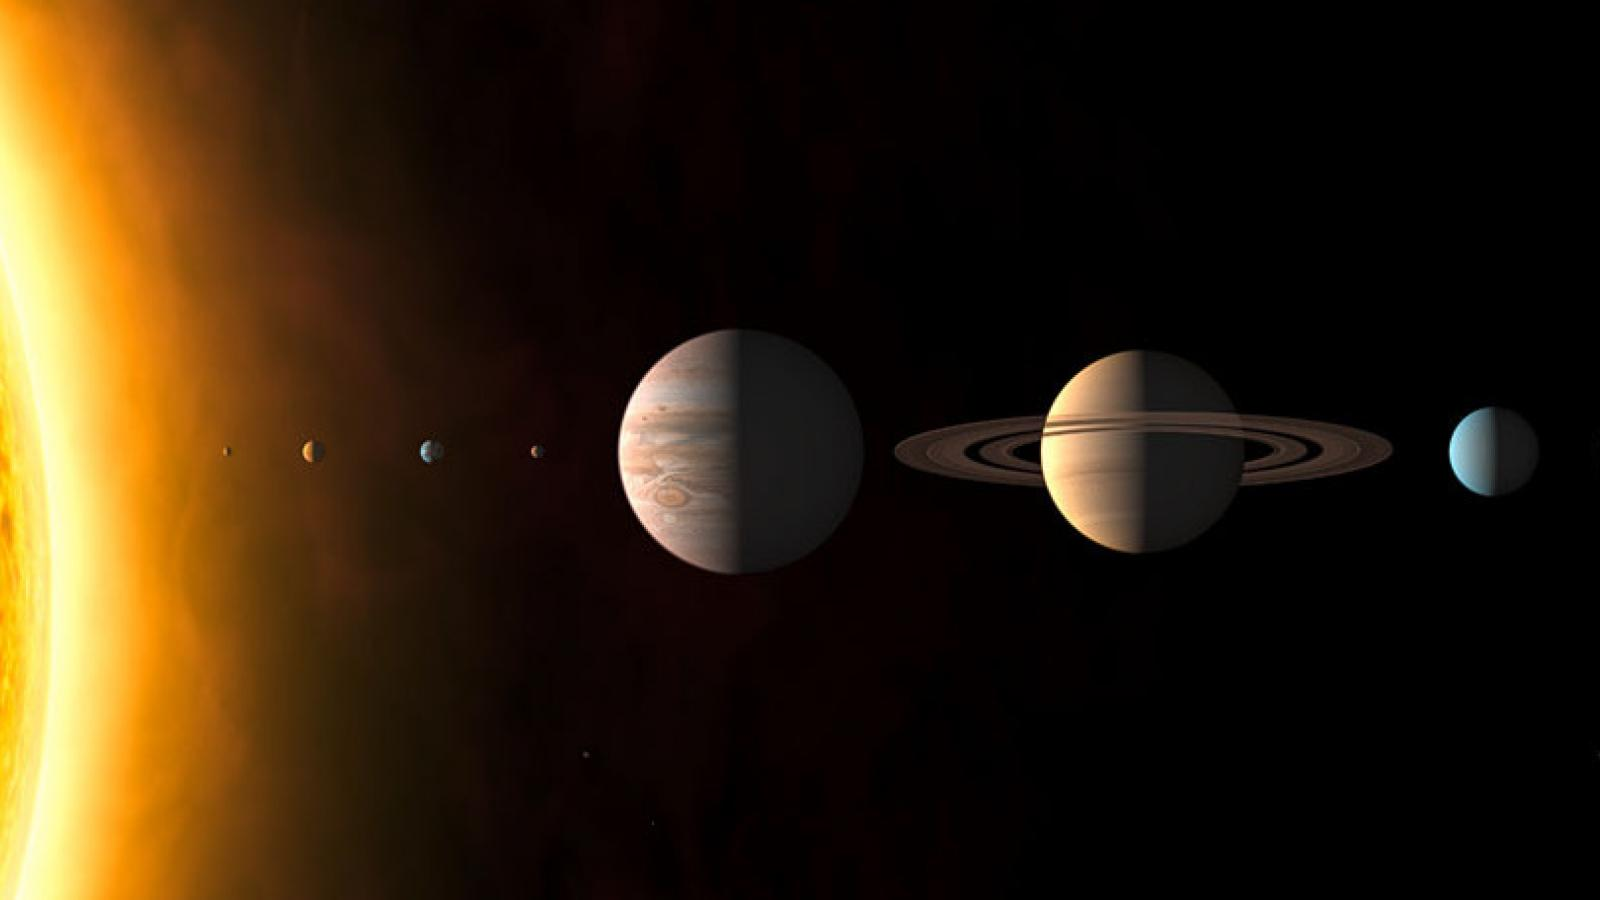 Ast1140 - Planets & The Solar System